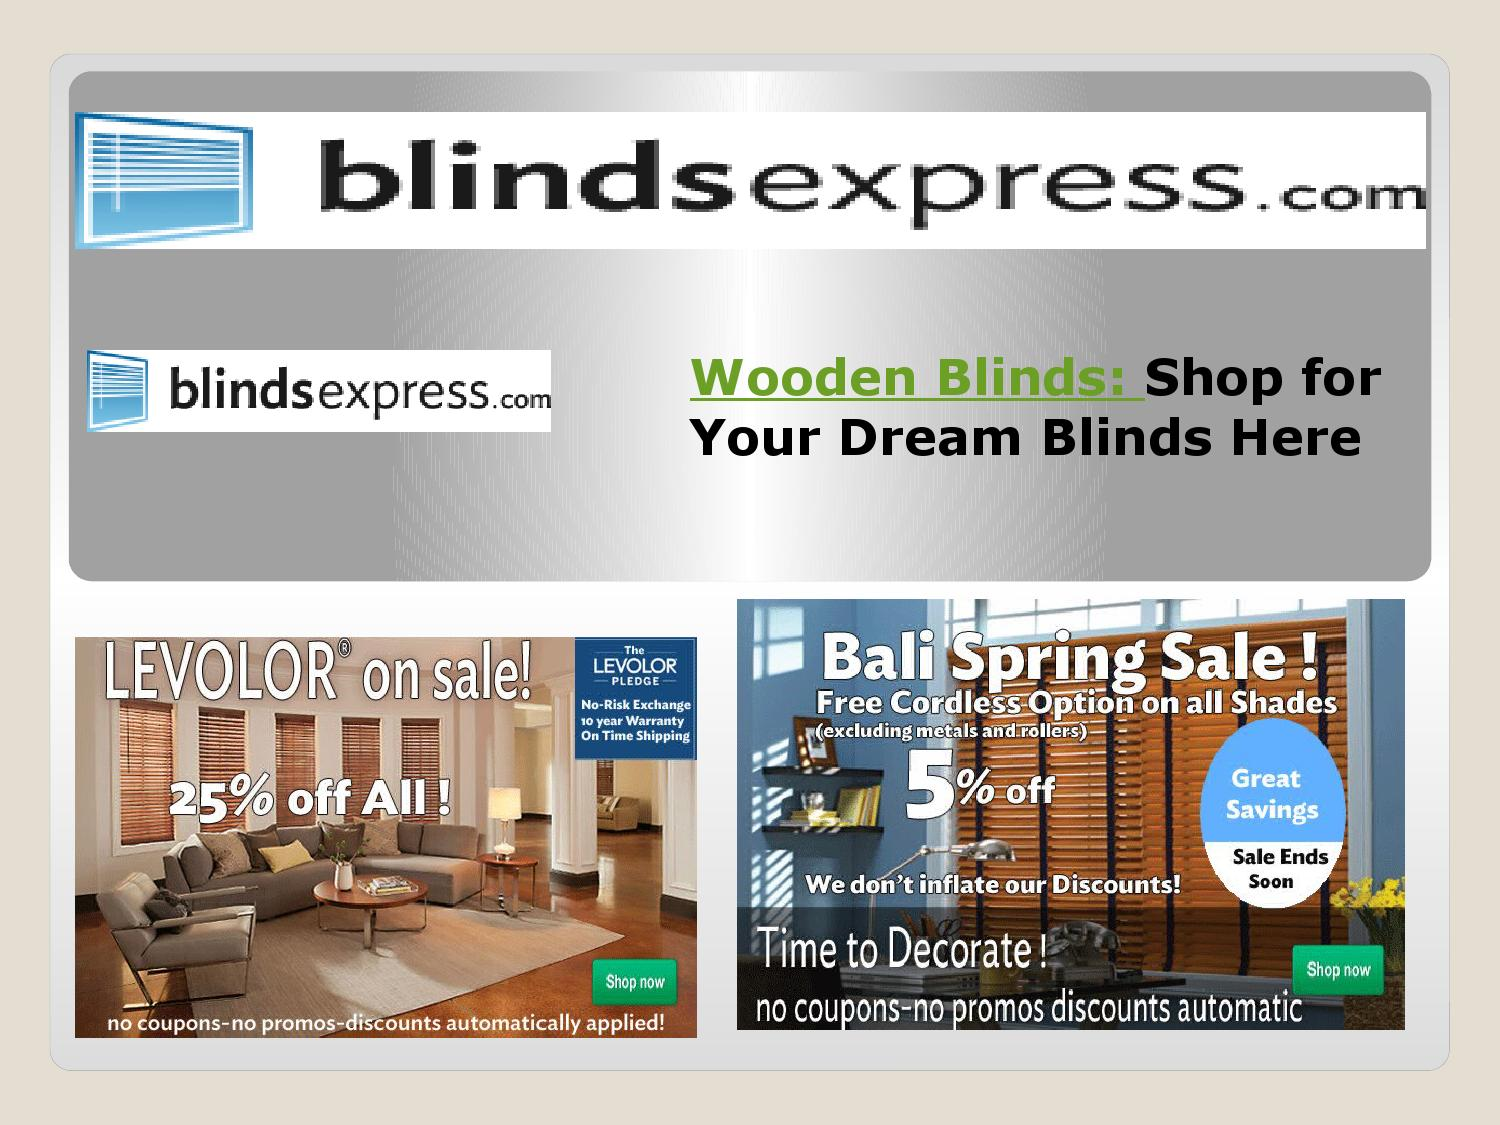 BLINDSEXPRESS: Sales of blinds, window Blinds, and more at Blindsexpress.com, we carry anything and everything blinds.